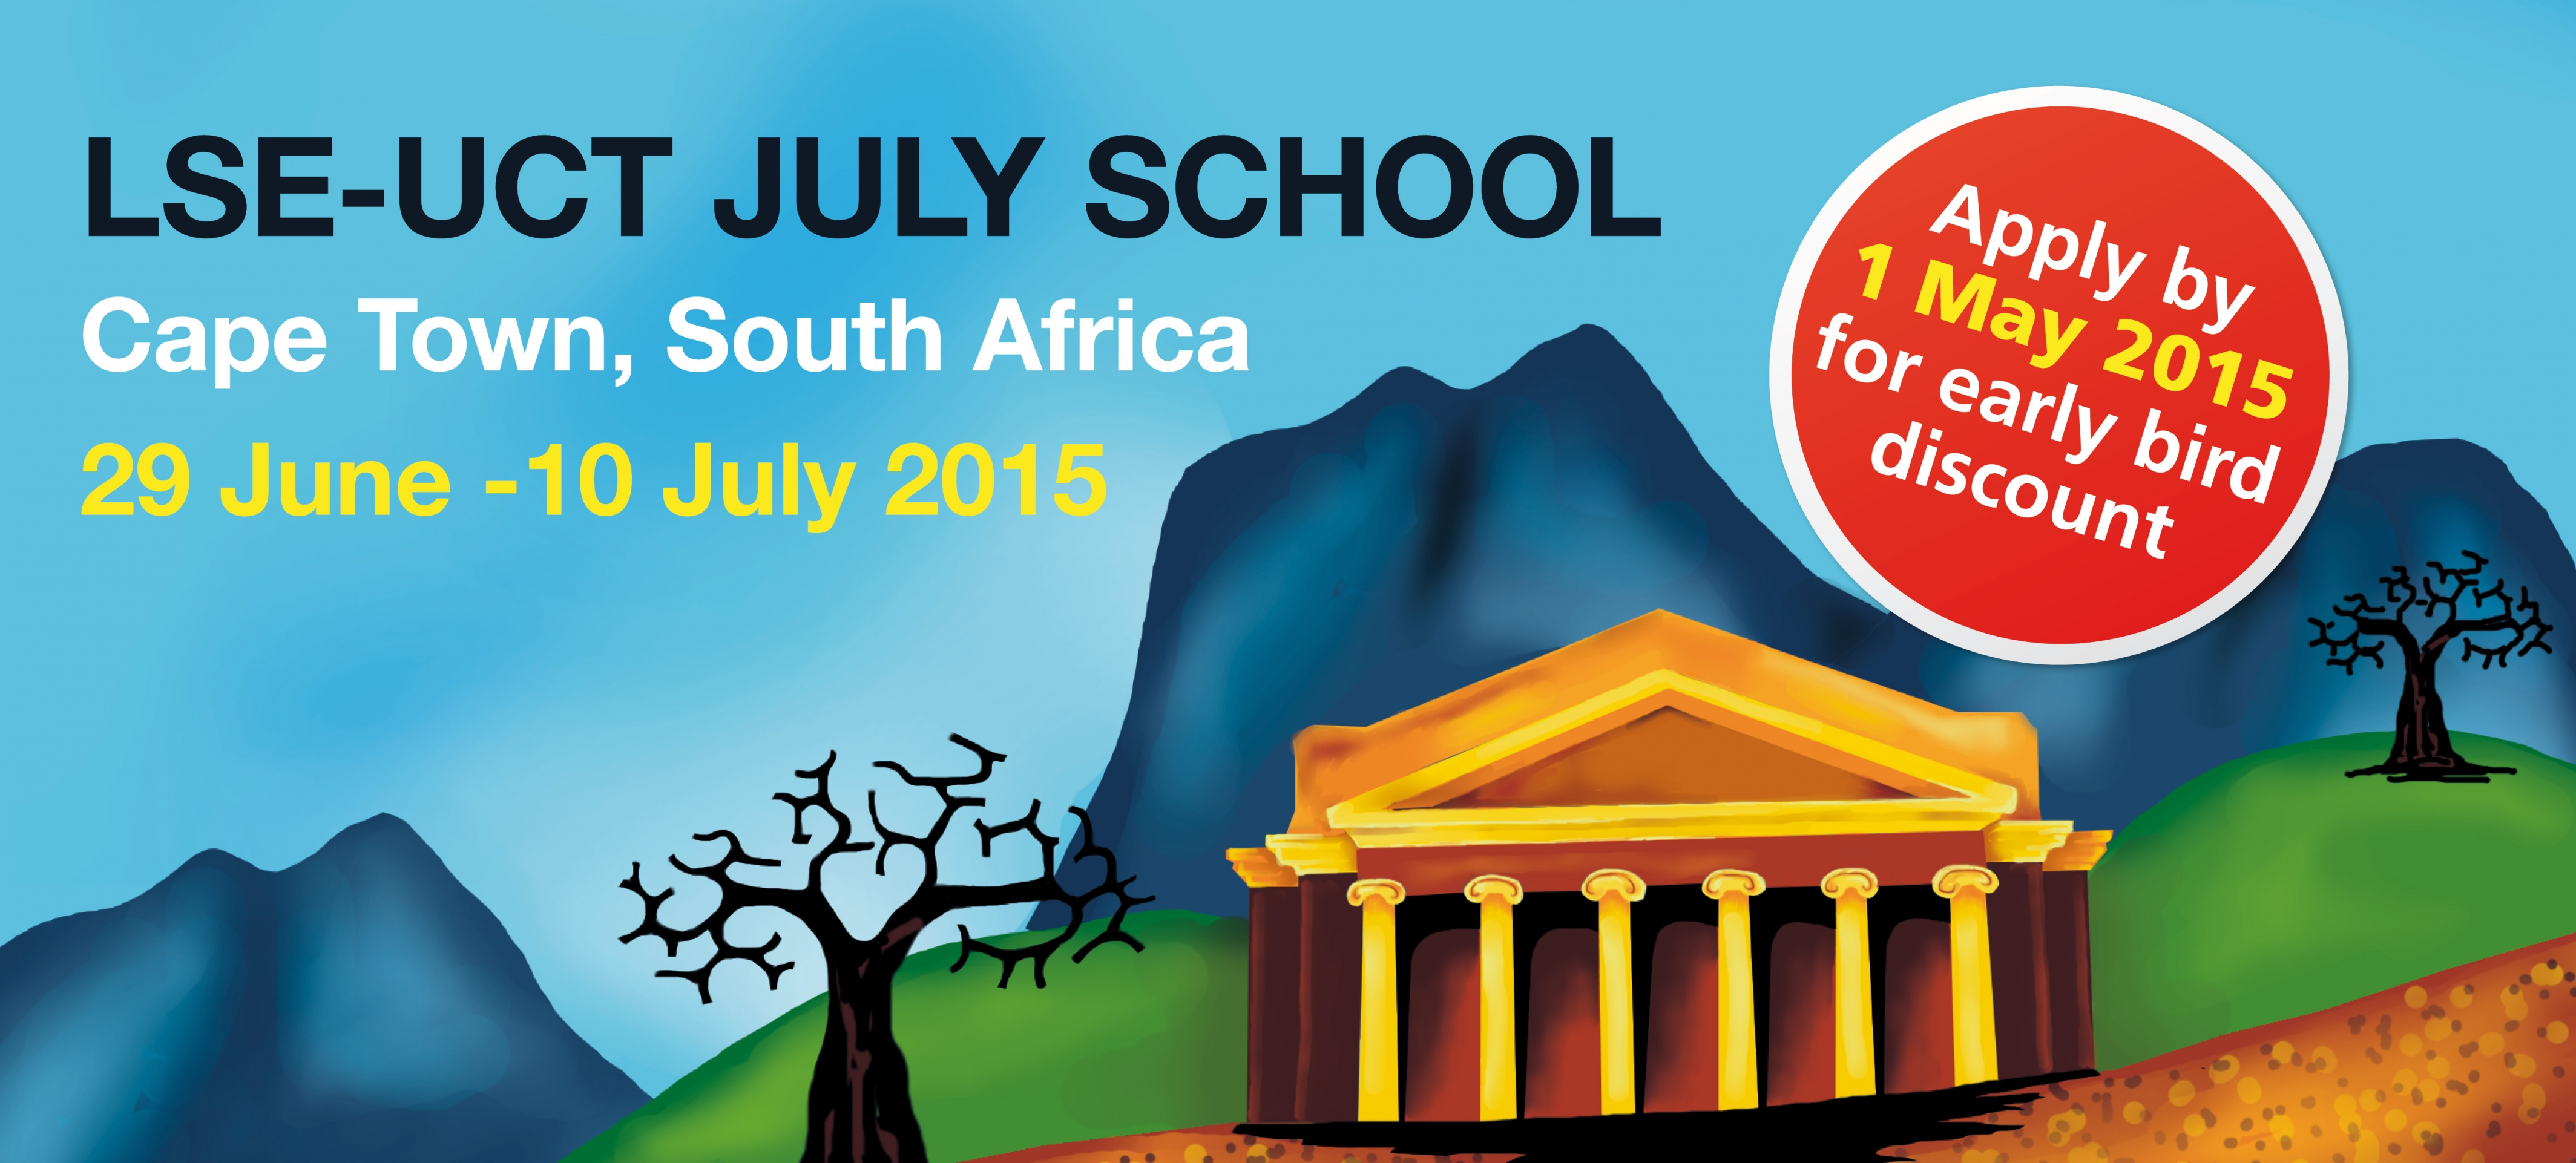 London School of Economics UCT Cape Town July School